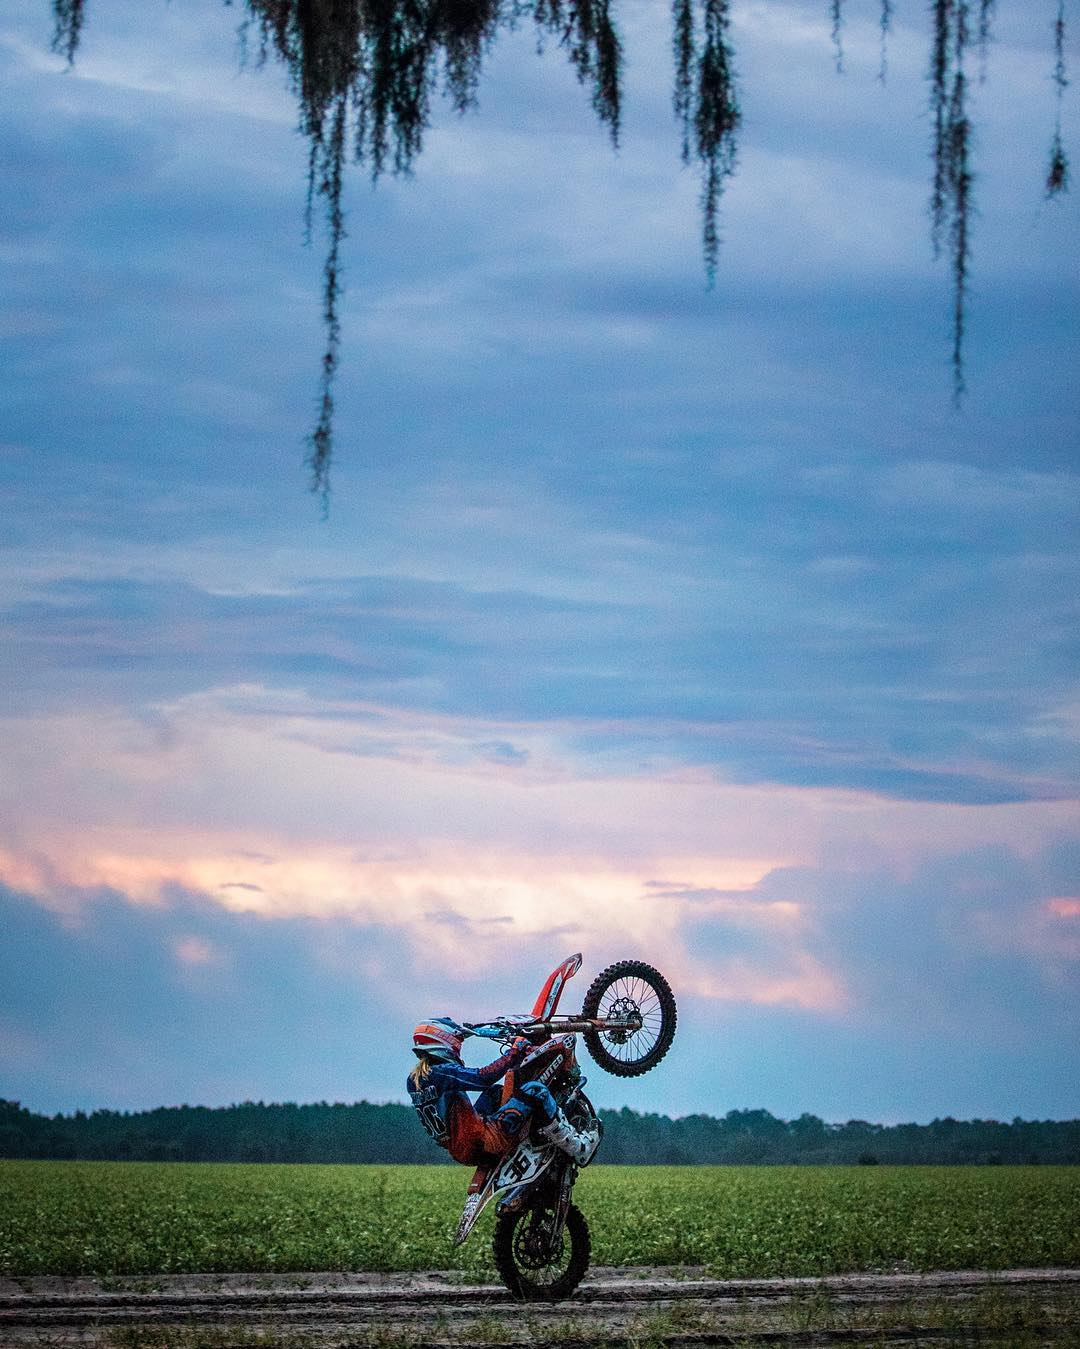 Wheelies in rain into the sunset at #PTomsRanch - #HowRomantic #SVGE #atifamily @officialmooseracing #dirtbikes #moto #wheelie #shred